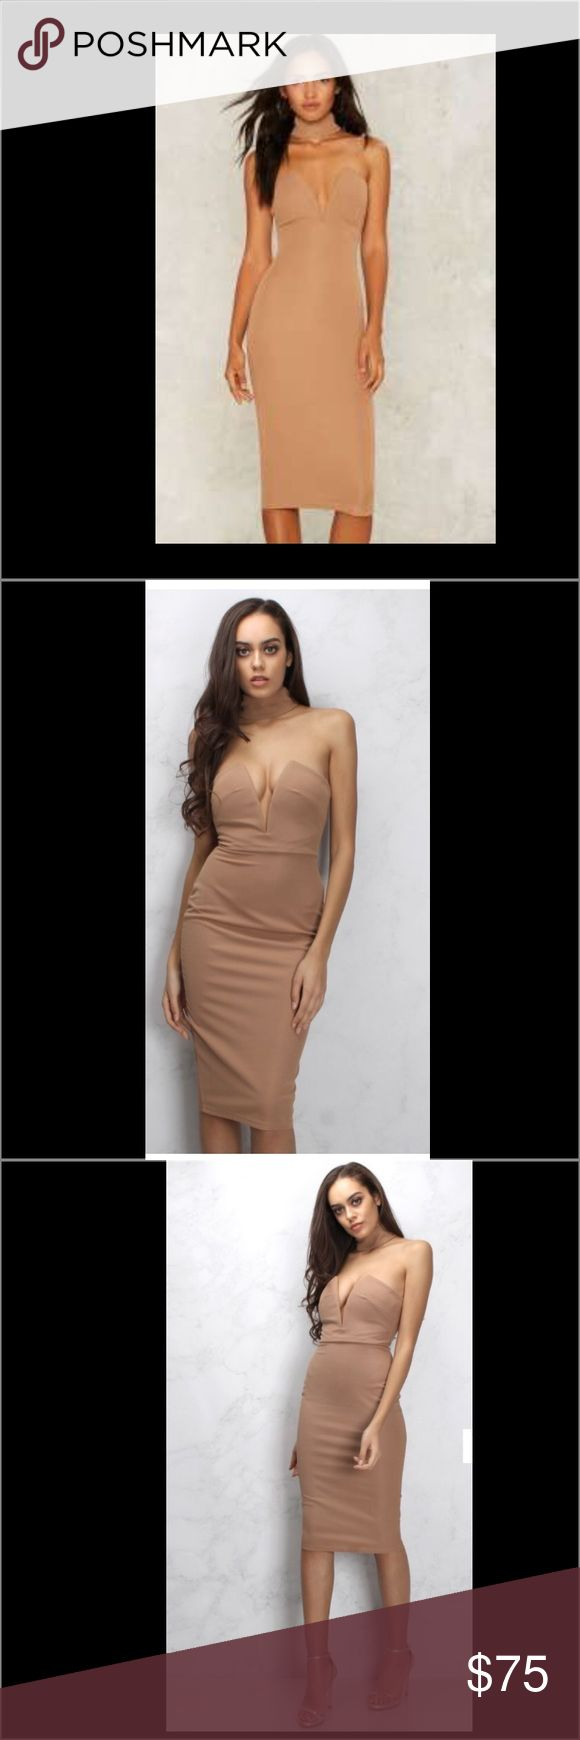 BRAND NEW!!! Camel High Neck Plunge Front Dress Camel high neck bodycon midi dress. Featuring a plunge front bodice and a choker neck design this bodycon is a chic alternatively to the LBD. Team with metallic heels and statement clutch bag to complete the look. Rare London Dresses Midi